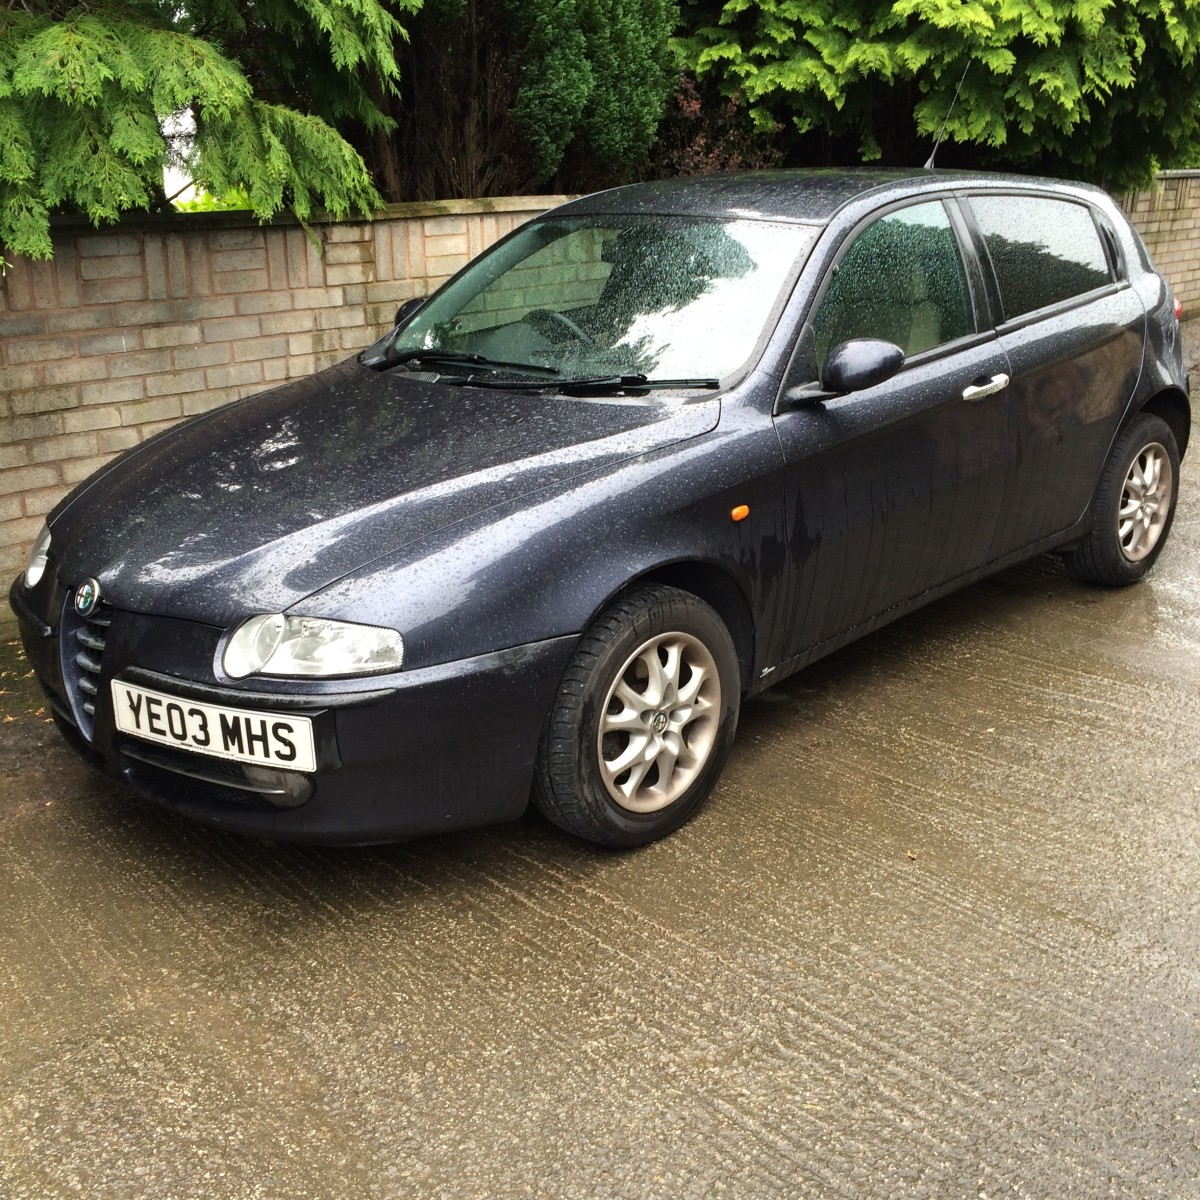 Alfa Romeo 147 / GT Rear Brake Discs and Pads Change